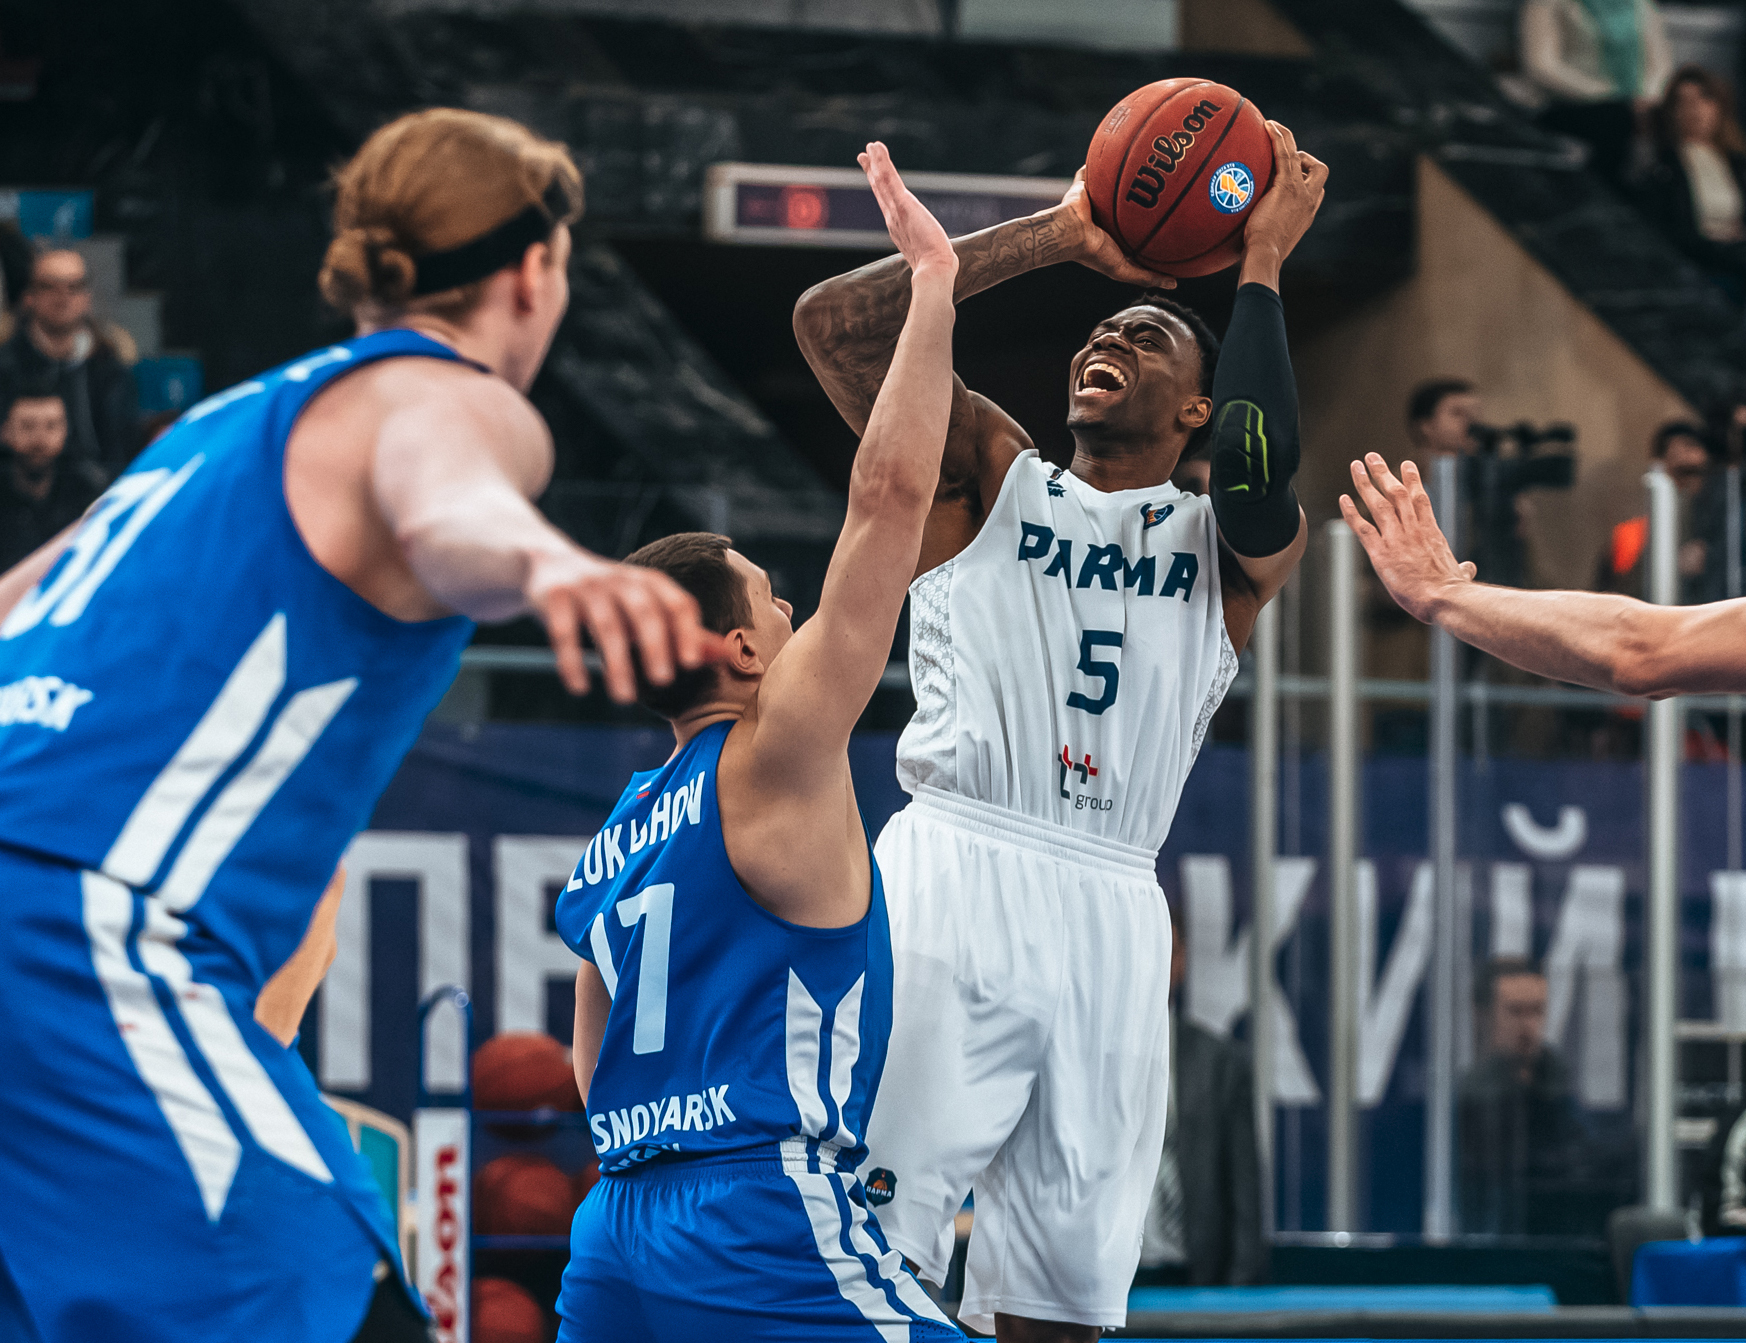 PARMA Wins, Dents Enisey's Playoff Hopes